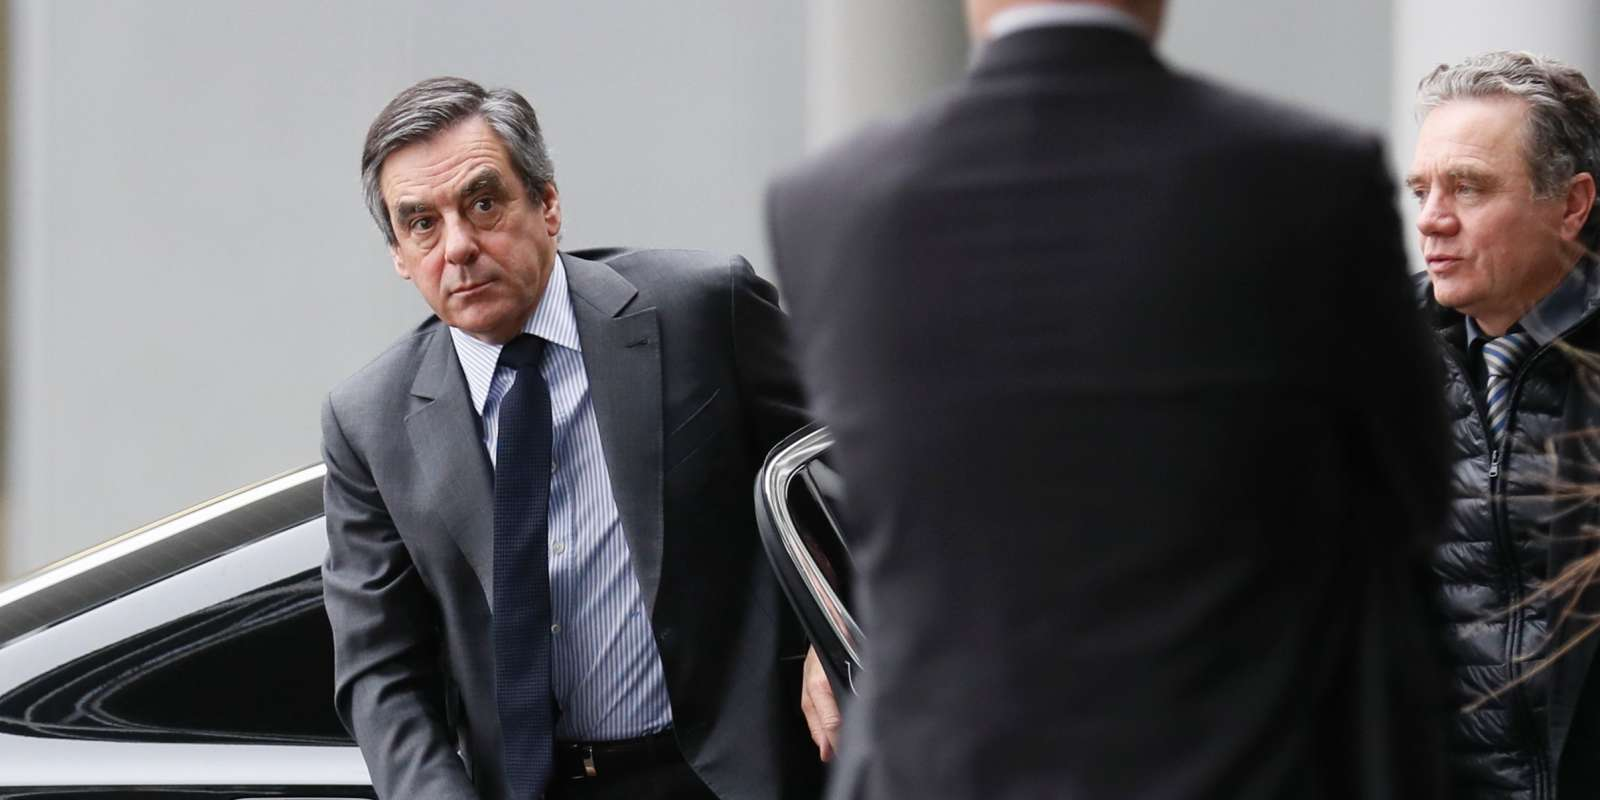 Former French Prime minister and right-wing candidate for the upcoming presidential election Francois Fillon (L) arrives to attend the opening ceremony of the archives of late French political figure Philippe Seguin, on January 26, 2017 at the Archives Nationales in Pierrefitte-sur-Seine. Under-fire French presidential candidate Francois Fillon on January 26, 2017, responded to claims that his wife had been paid 500,000 euros ($540,000) for a fake job by saying she has